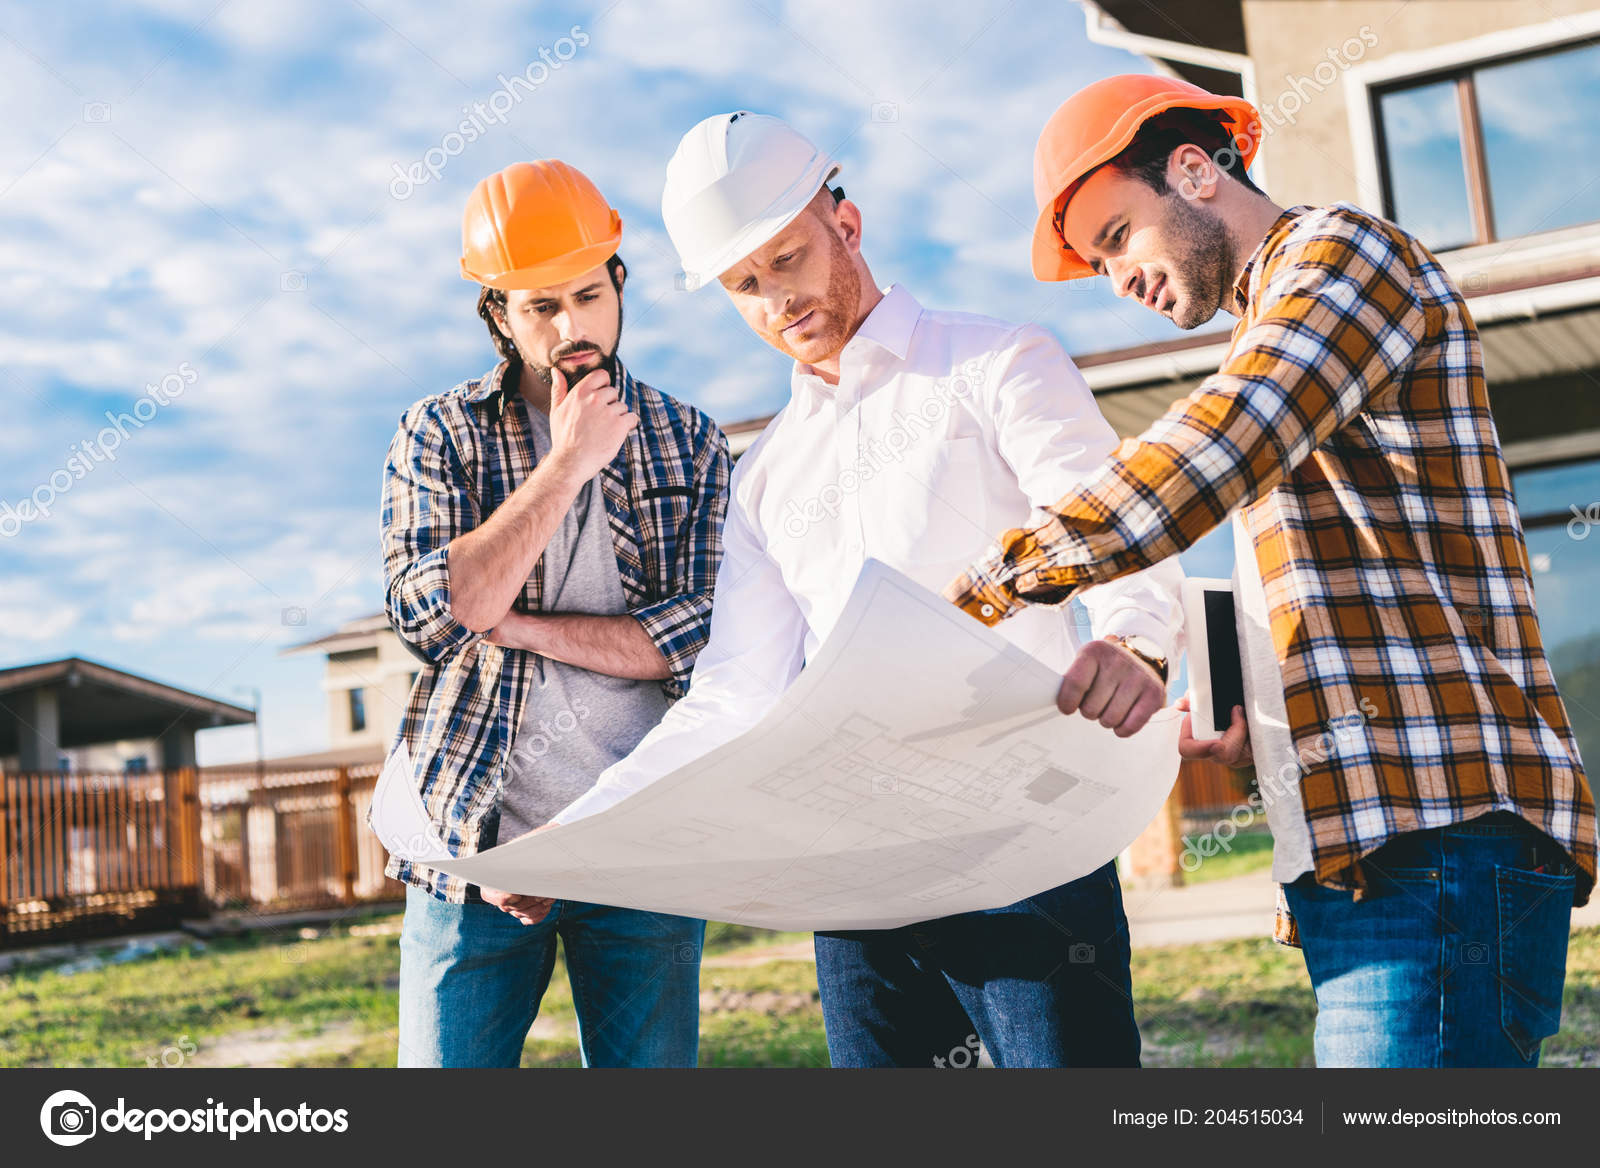 Group handsome architects blueprint garden construction site stock group handsome architects blueprint garden construction site stock photo malvernweather Images